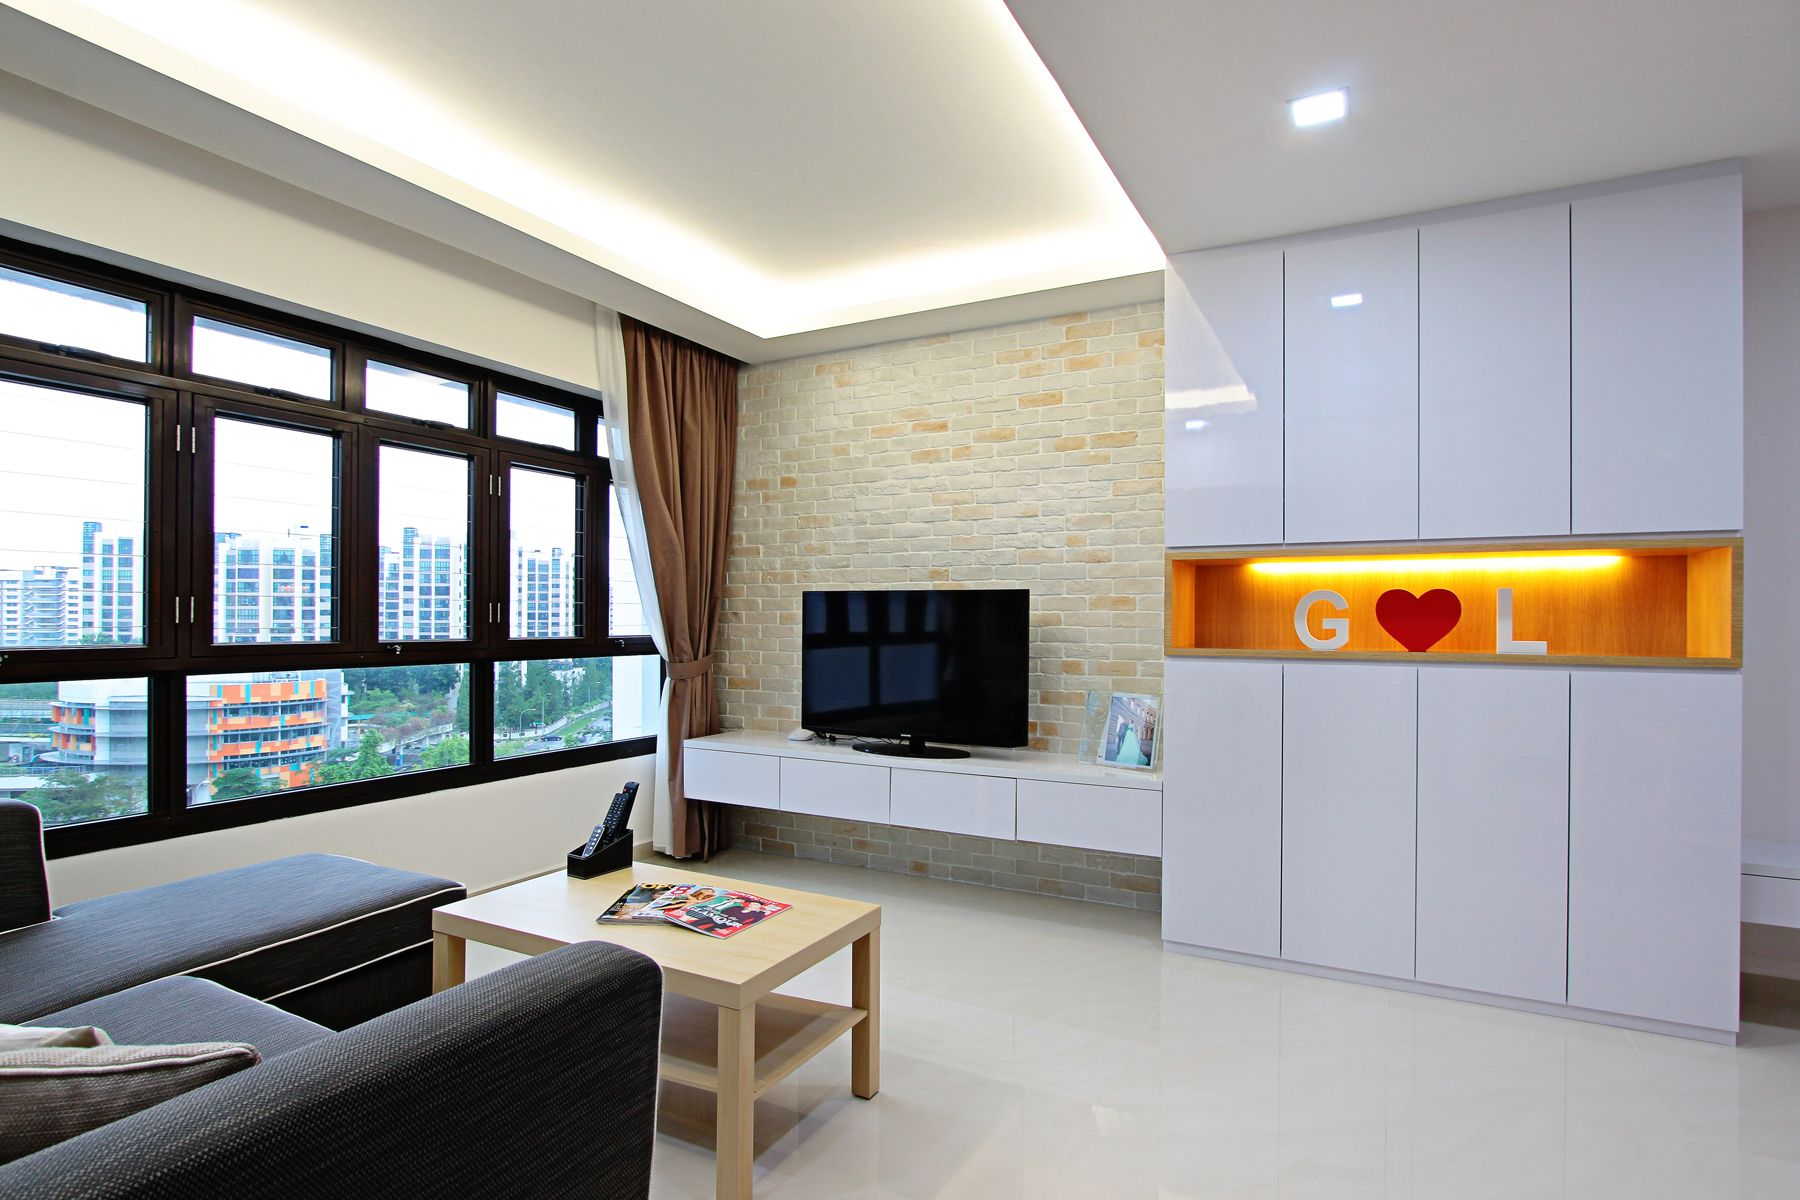 Hdb 4Room Standard Flat 92Sqmsimple Neat Design With Smoothing Fair Hdb 4 Room Living Room Design Design Inspiration